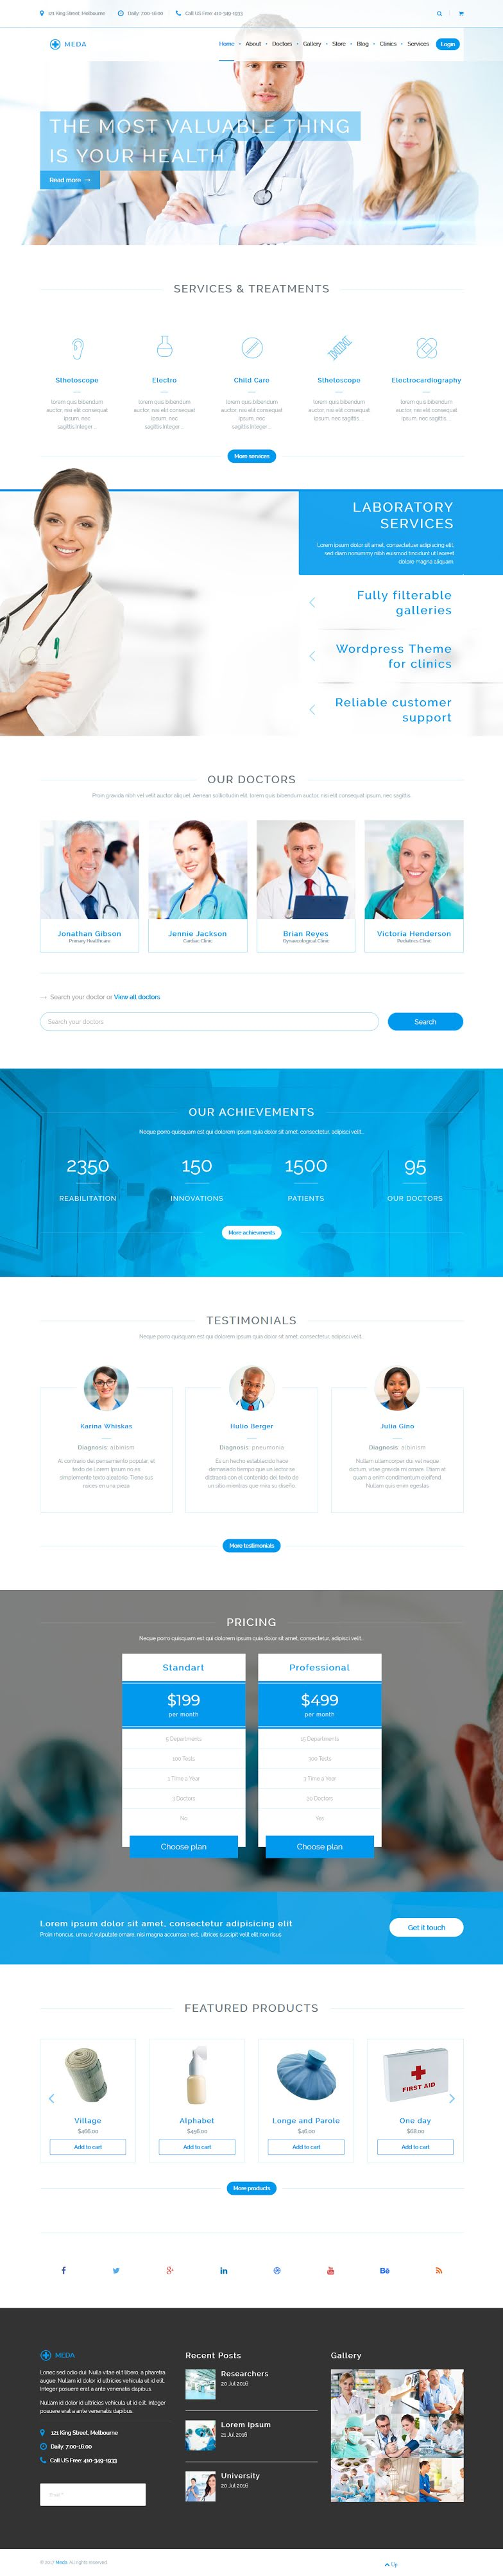 Meda - Best Premium Hospital WordPress Theme